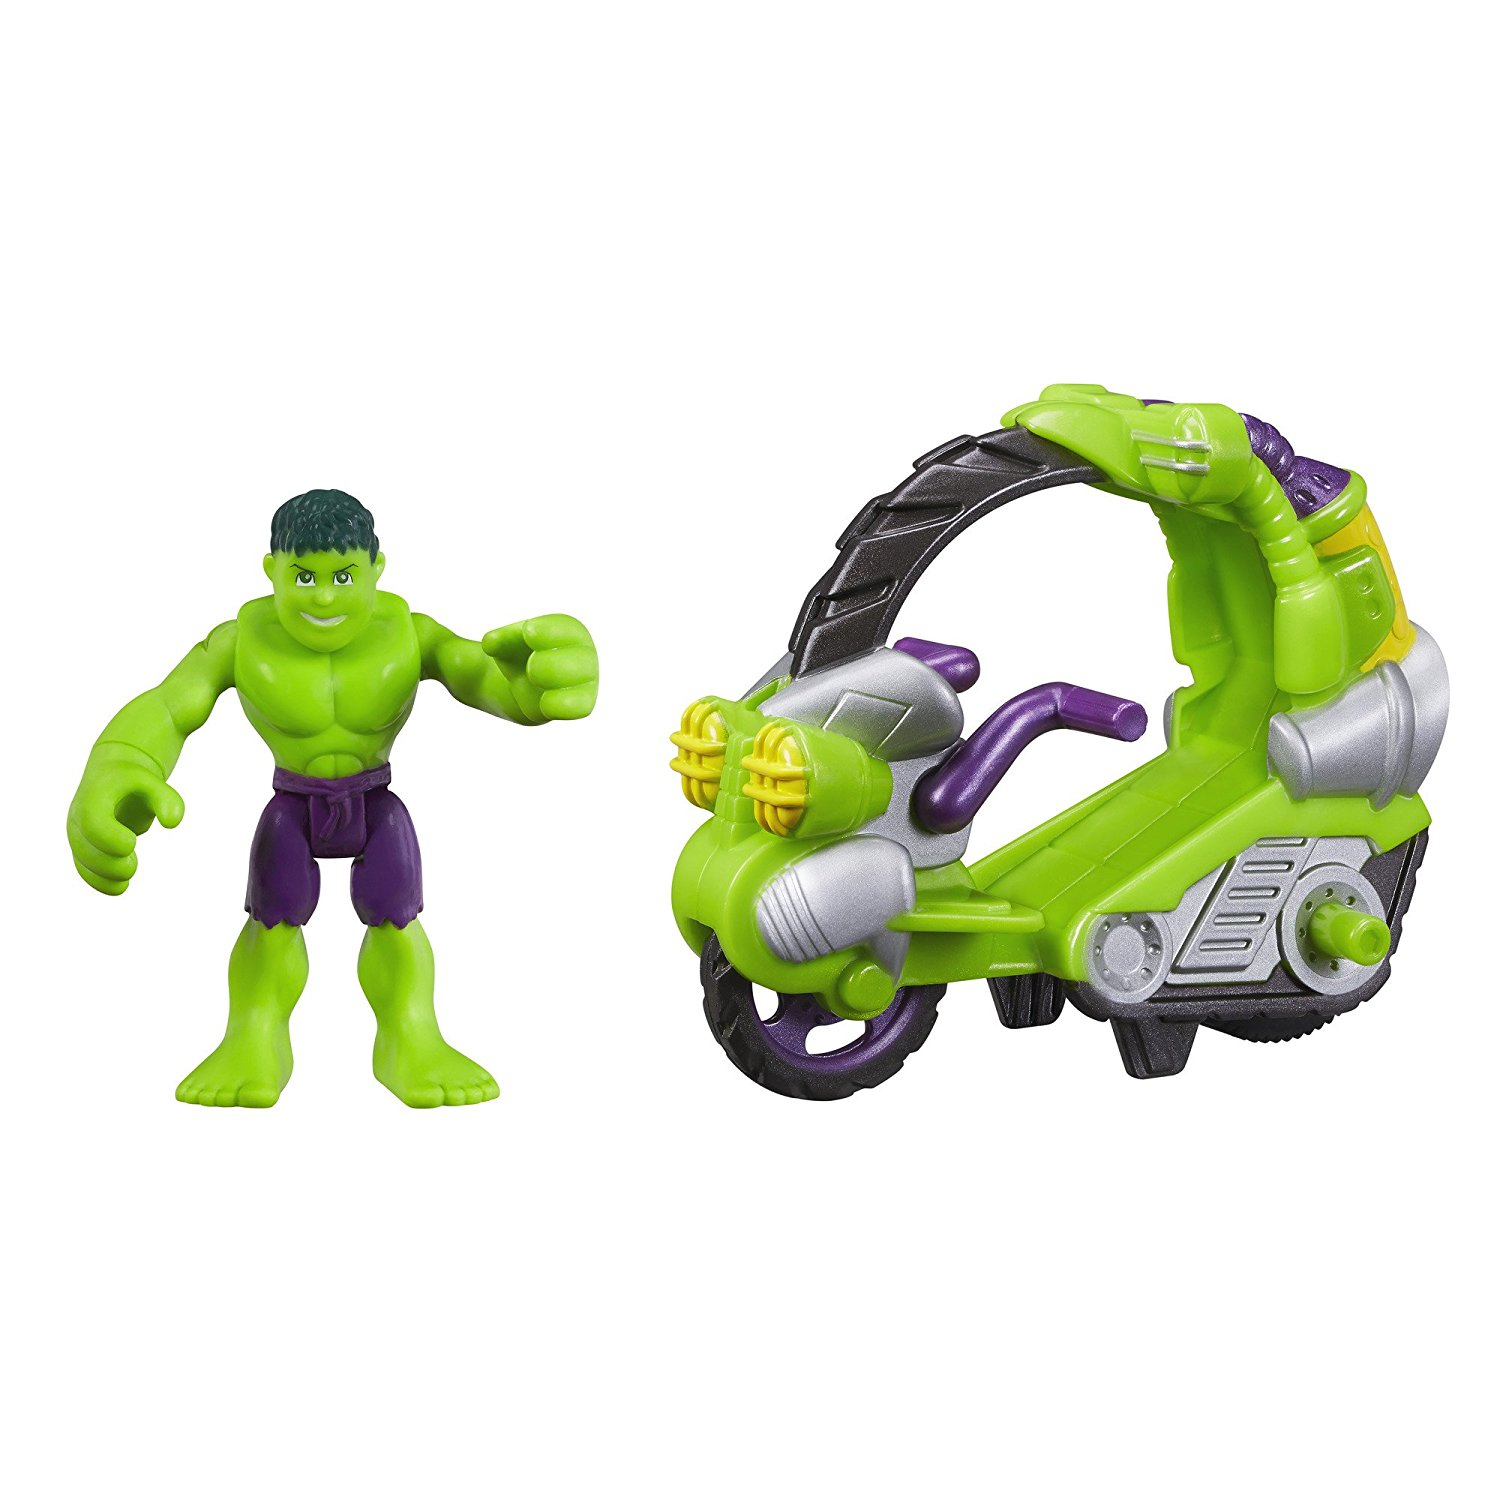 Heroes Marvel Super Hero Adventures Hulk Figure with Tread Racer Vehicle..., By Playskool... by